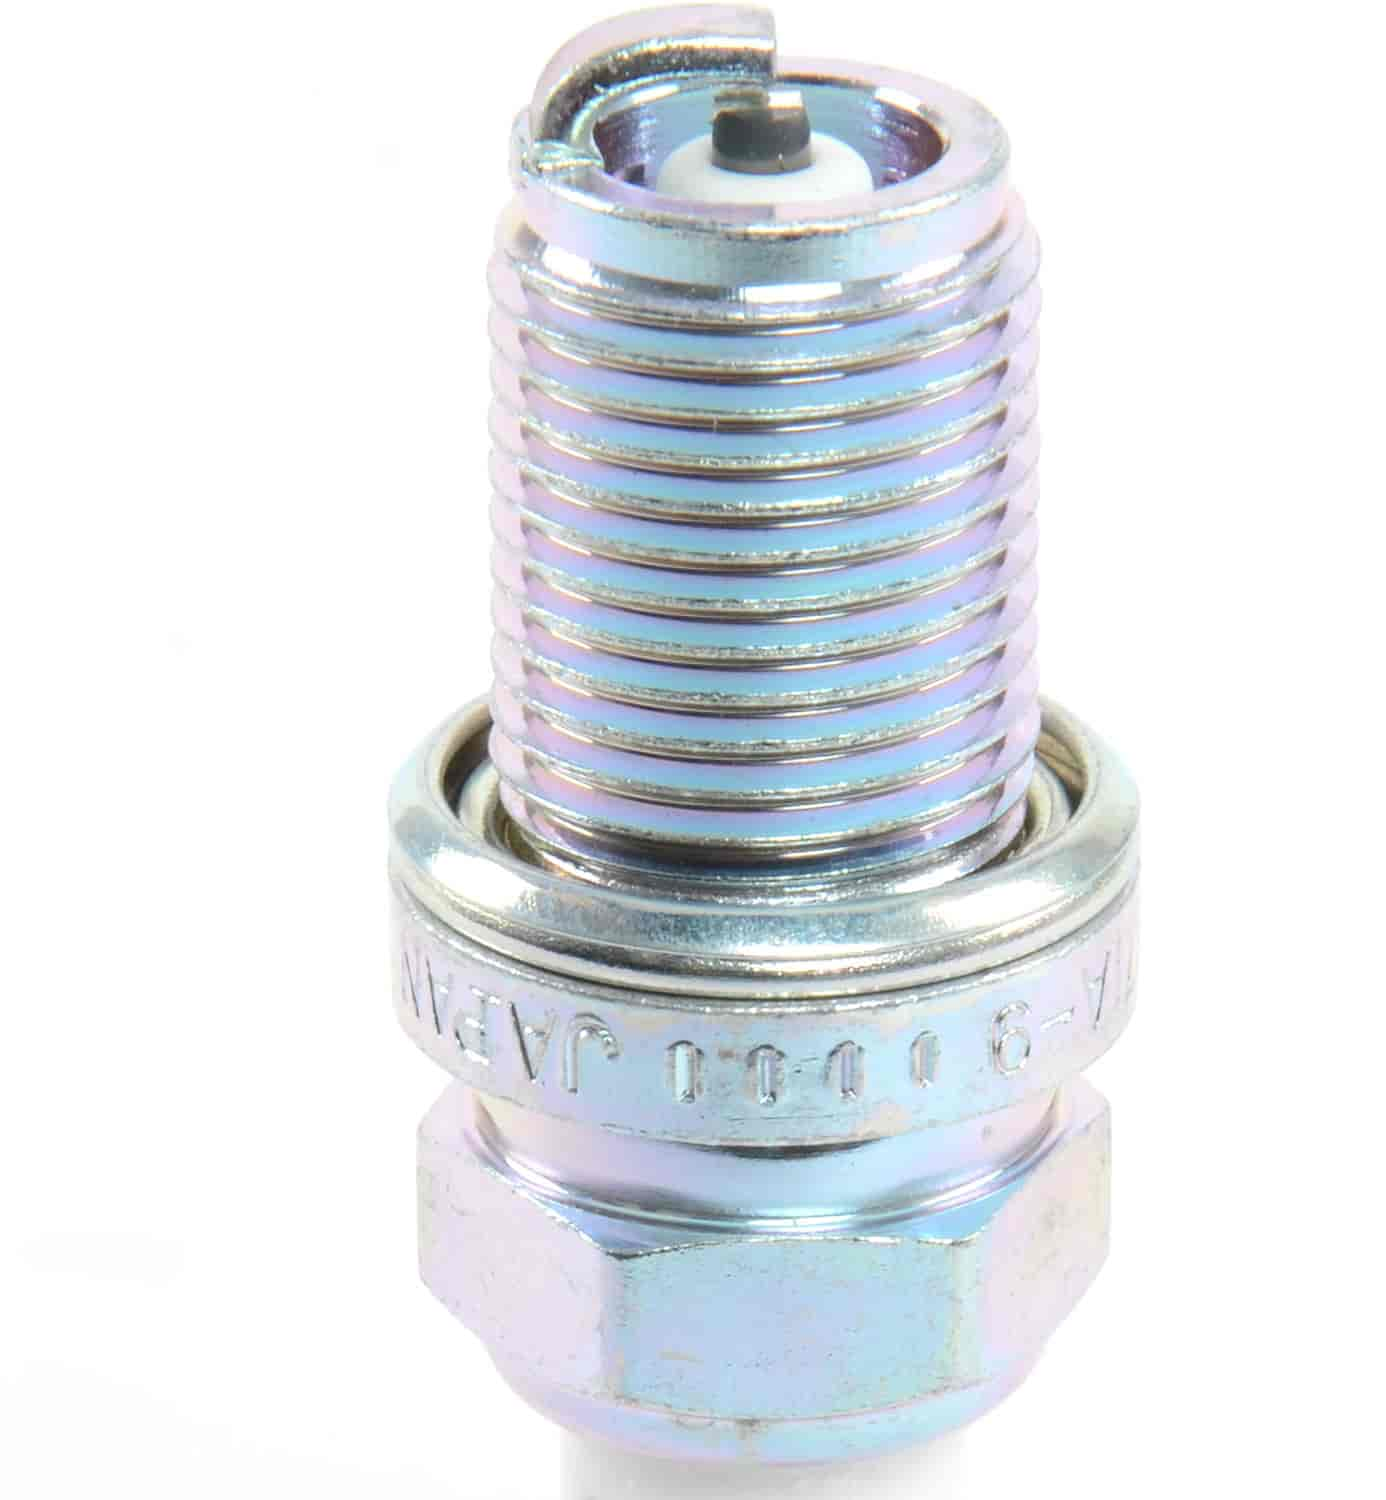 NGK Spark Plugs R5671A-9 - NGK Racing Spark Plugs